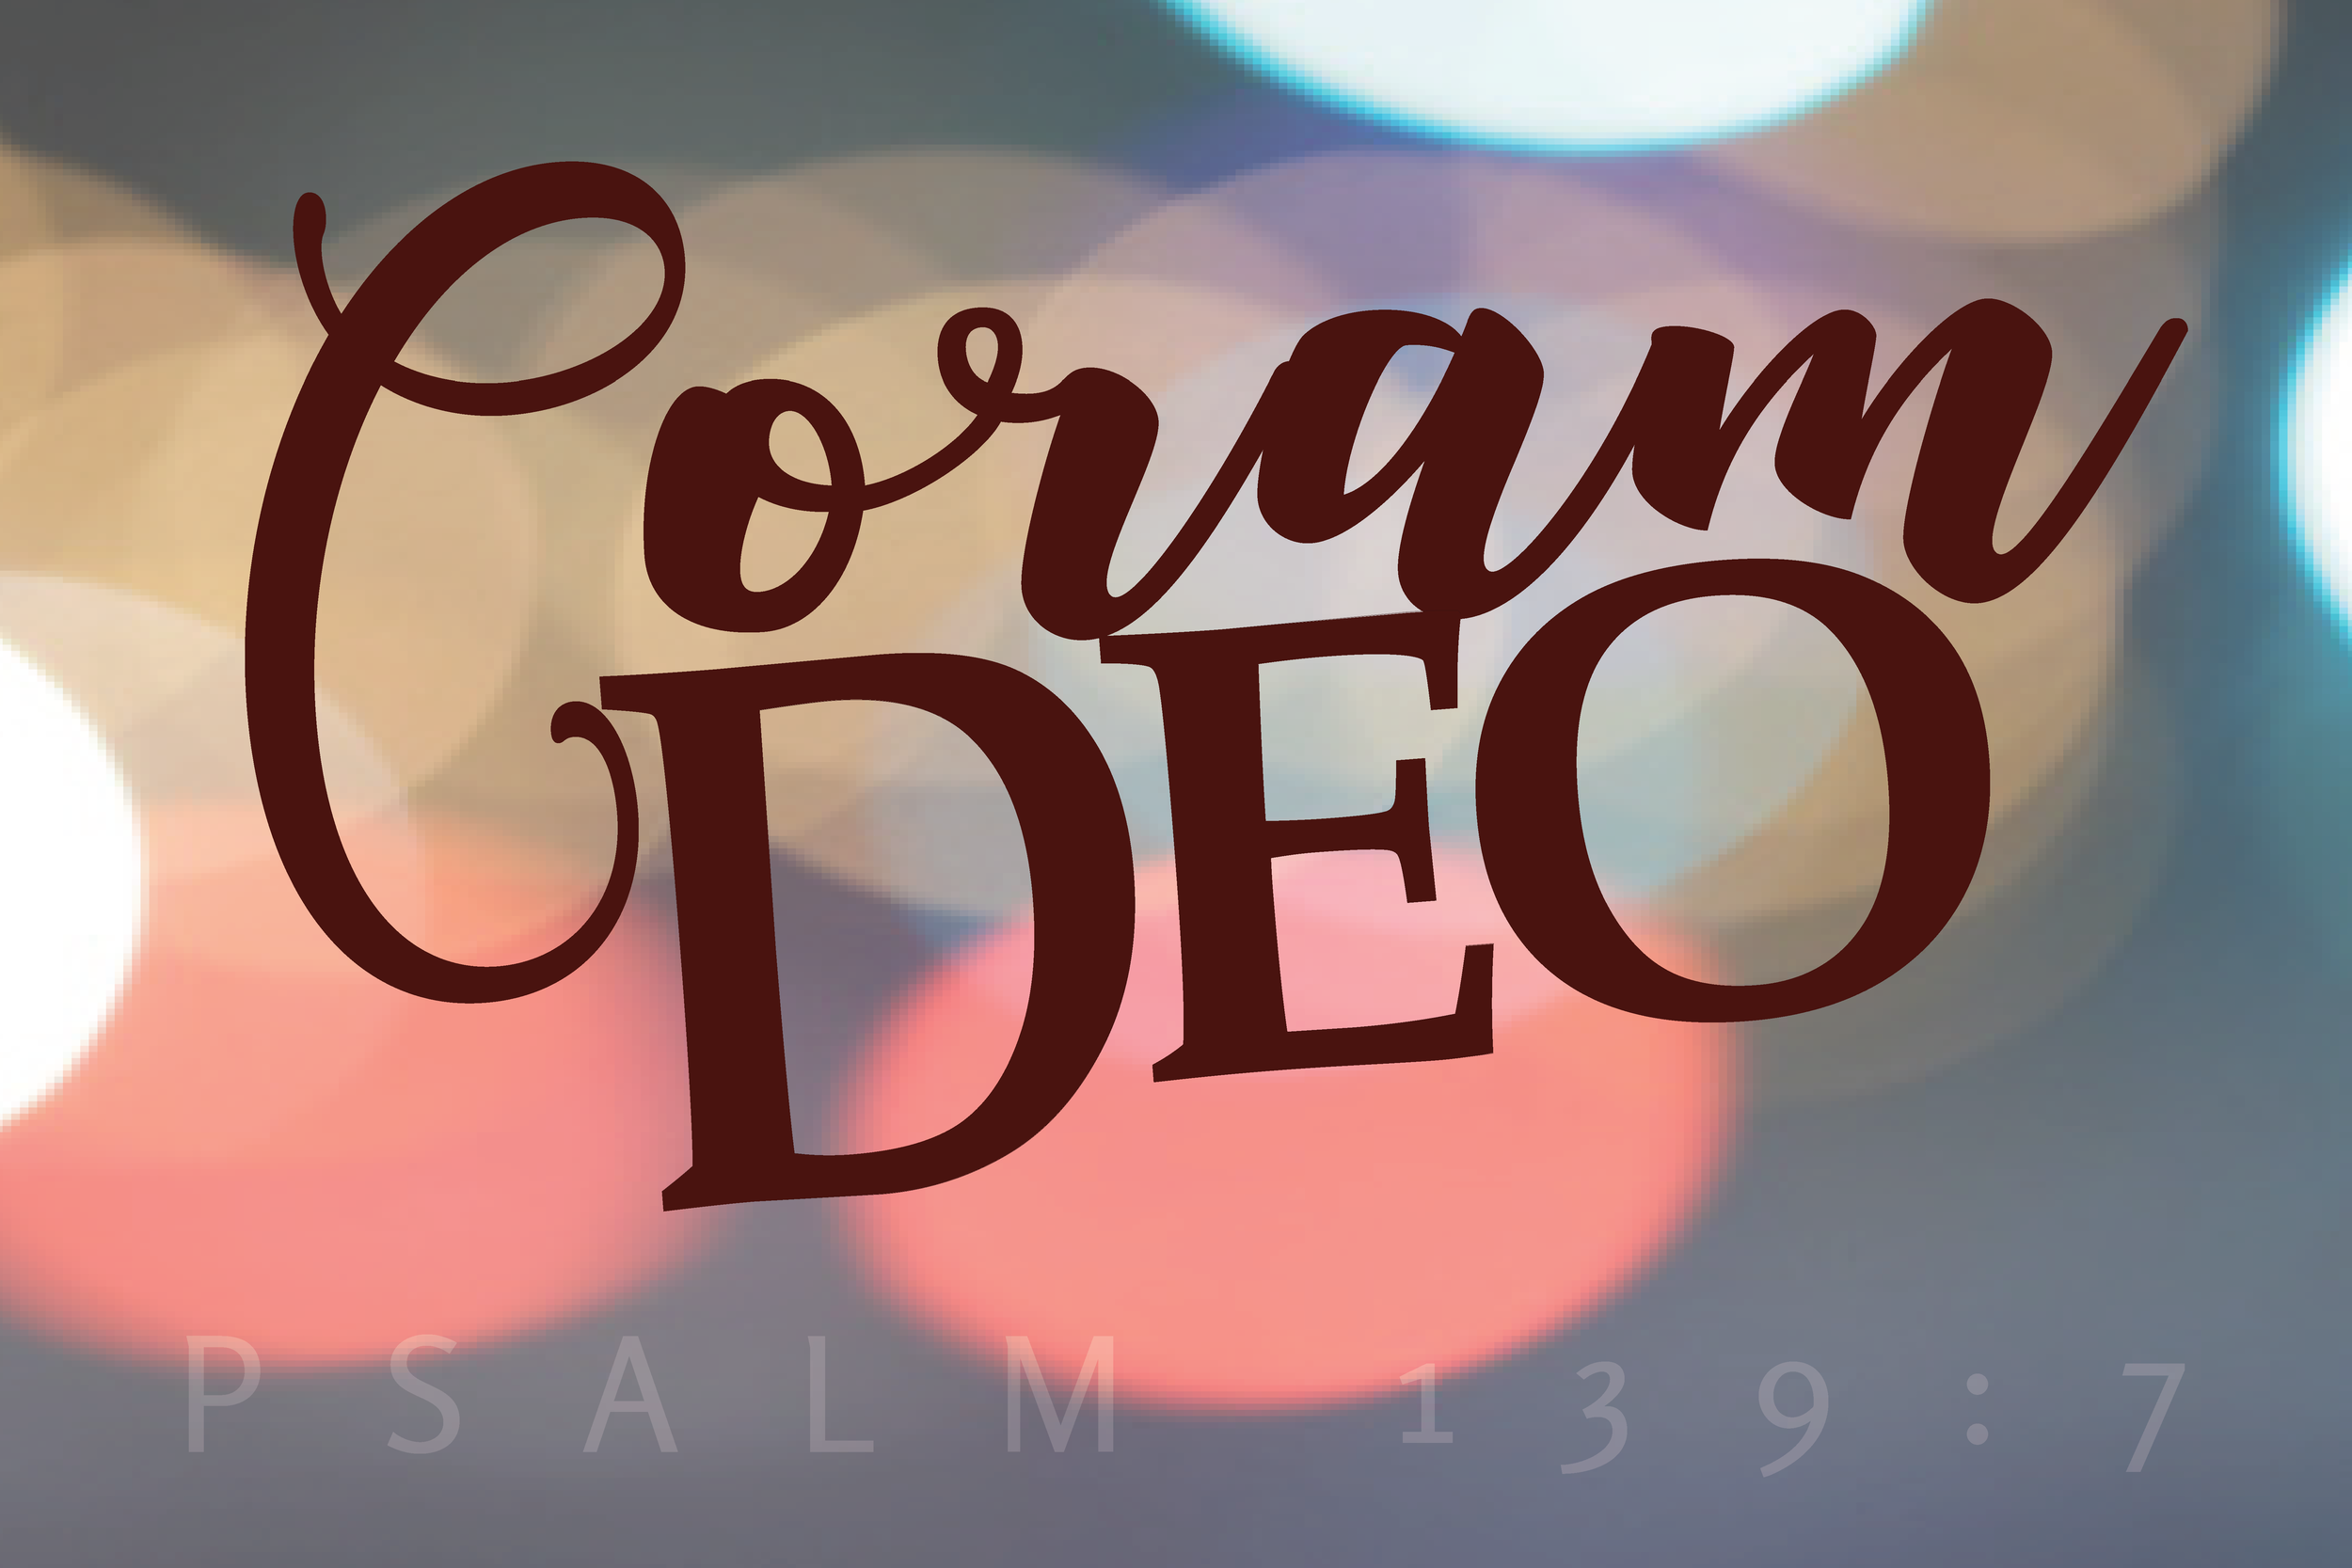 Coram Deo 36x24.png